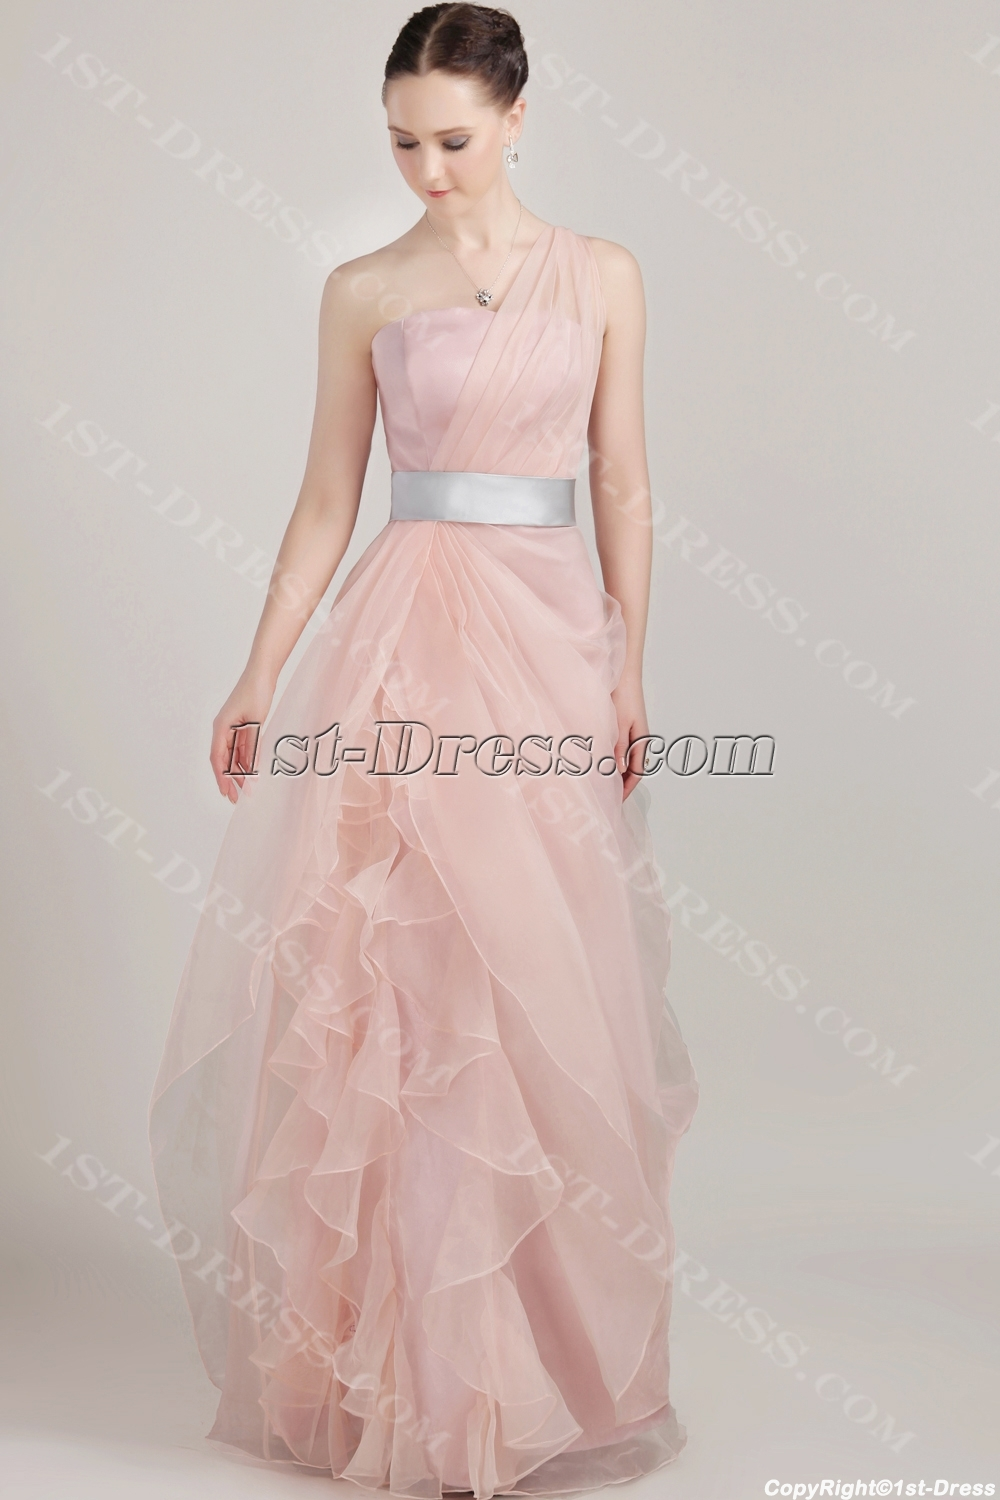 images/201304/big/Coral-One-Shoulder-Long-Pretty-Prom-Dress-with-Silver-Band-IMG_3220-1057-b-1-1366131528.jpg